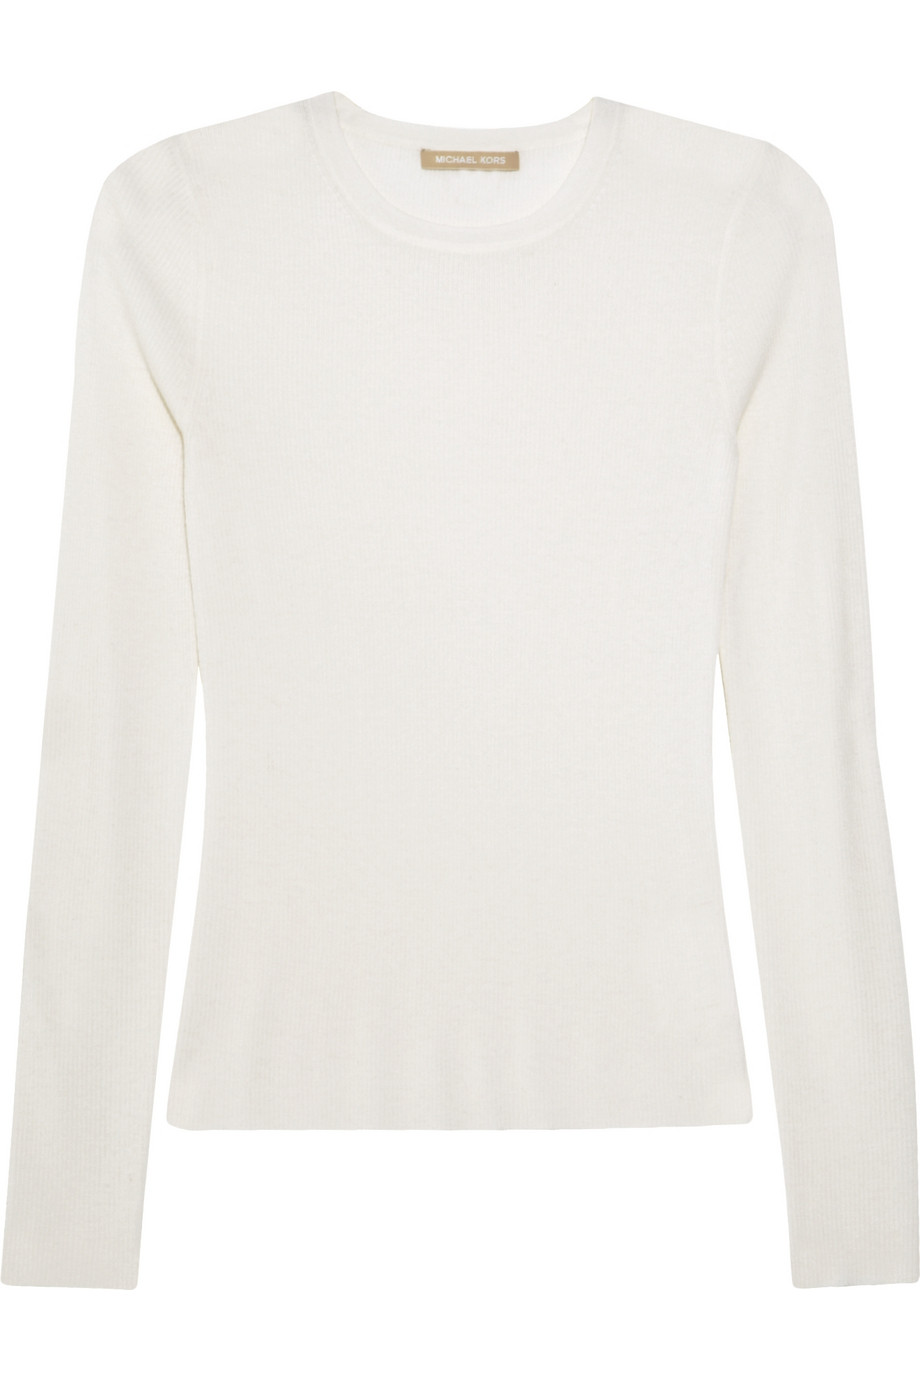 Michael kors Ribbed Cashmere Sweater in White | Lyst